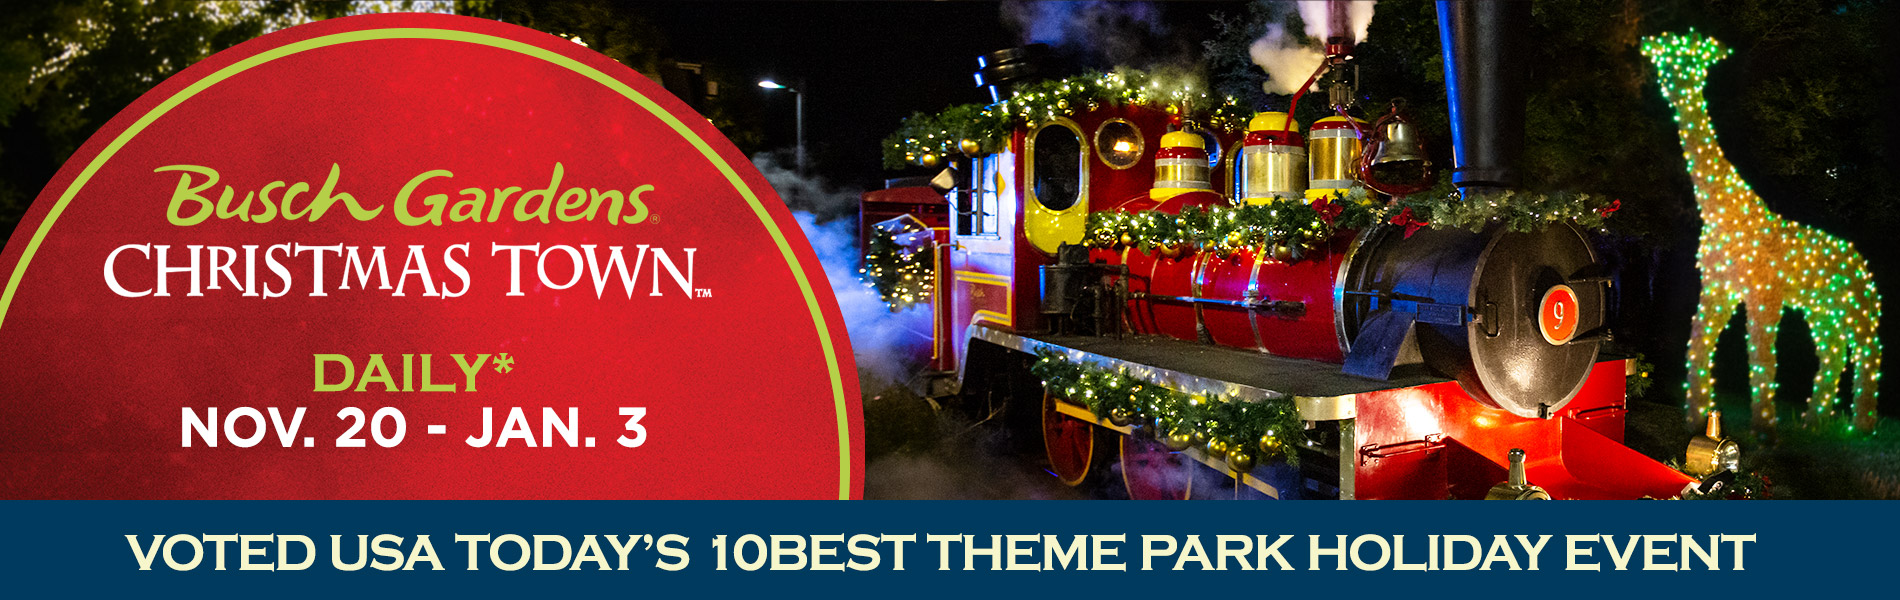 Busch Gardens Christmas Town - Voted USA Today's 10BEST Theme Park Holiday Event